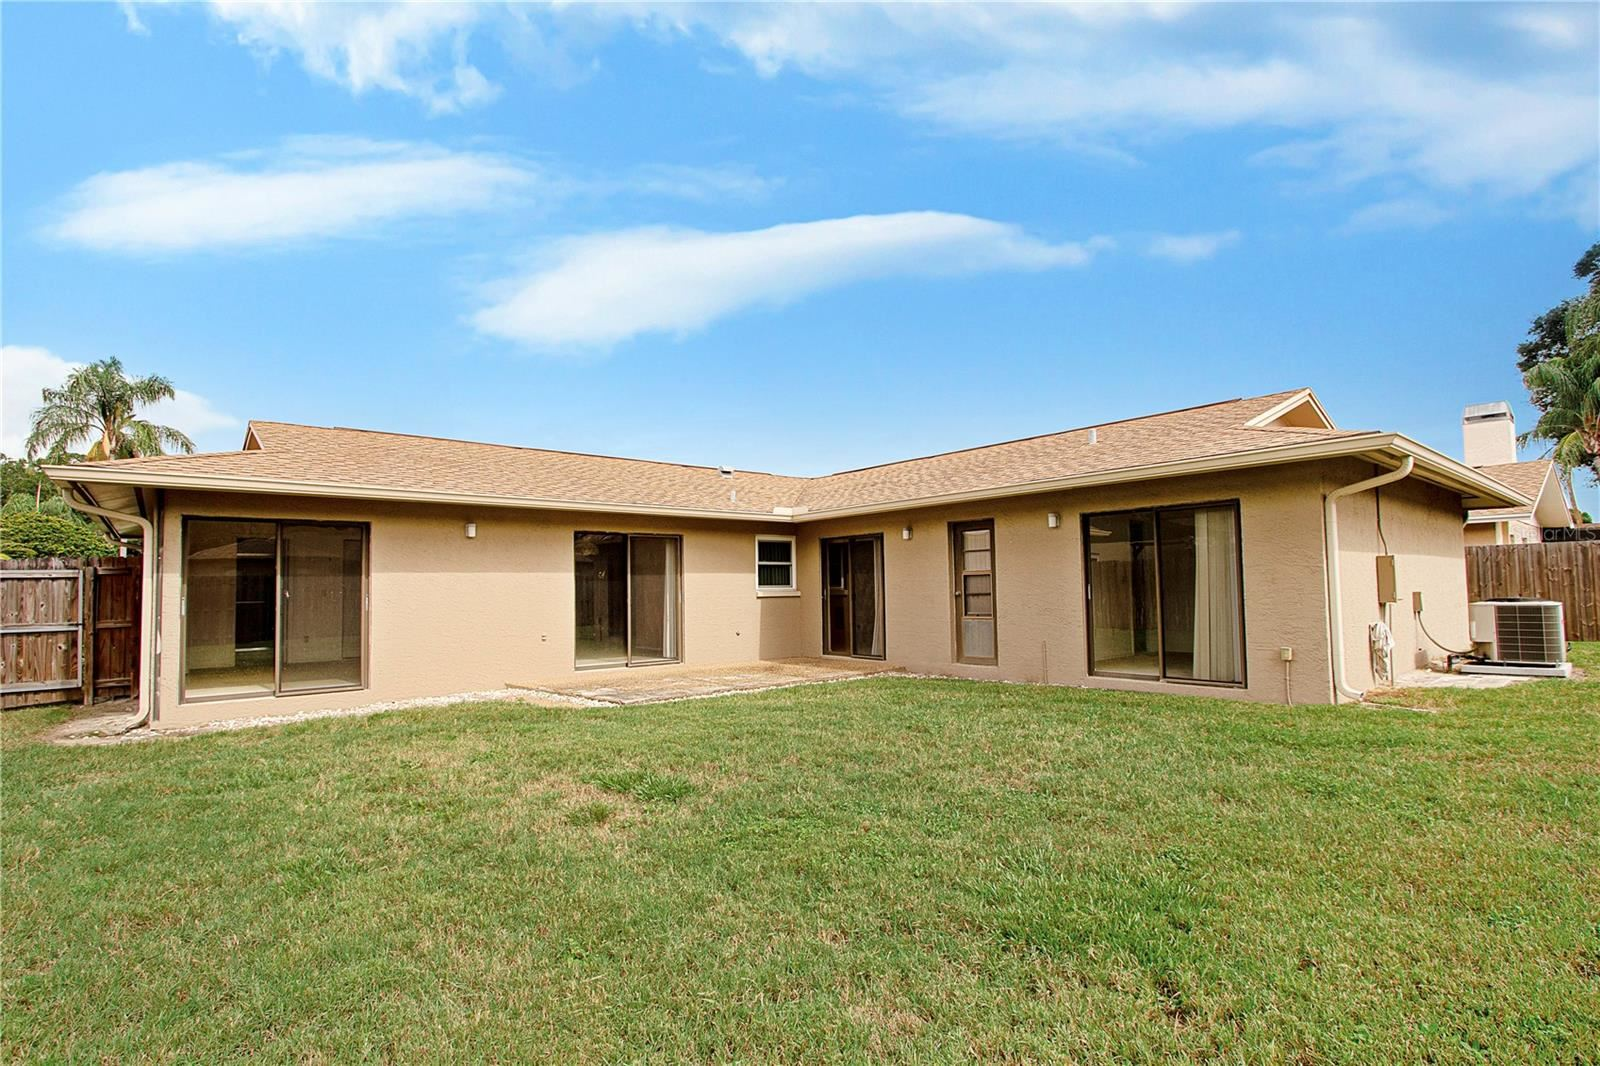 Photo of 16205 PARKSIDE DRIVE, TAMPA, FL 33624 (MLS # A4505037)